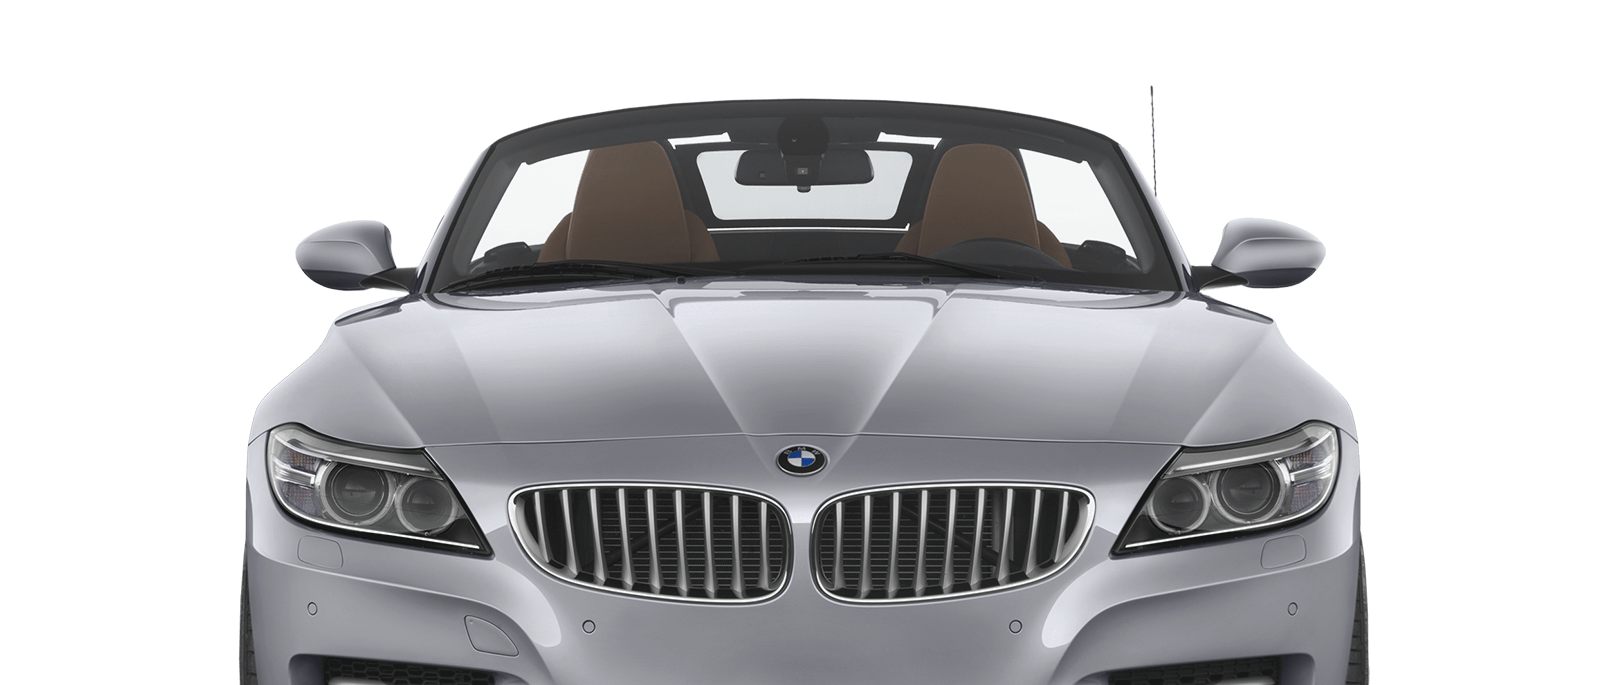 bmw z4 car rental exotic car collection by enterprise. Black Bedroom Furniture Sets. Home Design Ideas